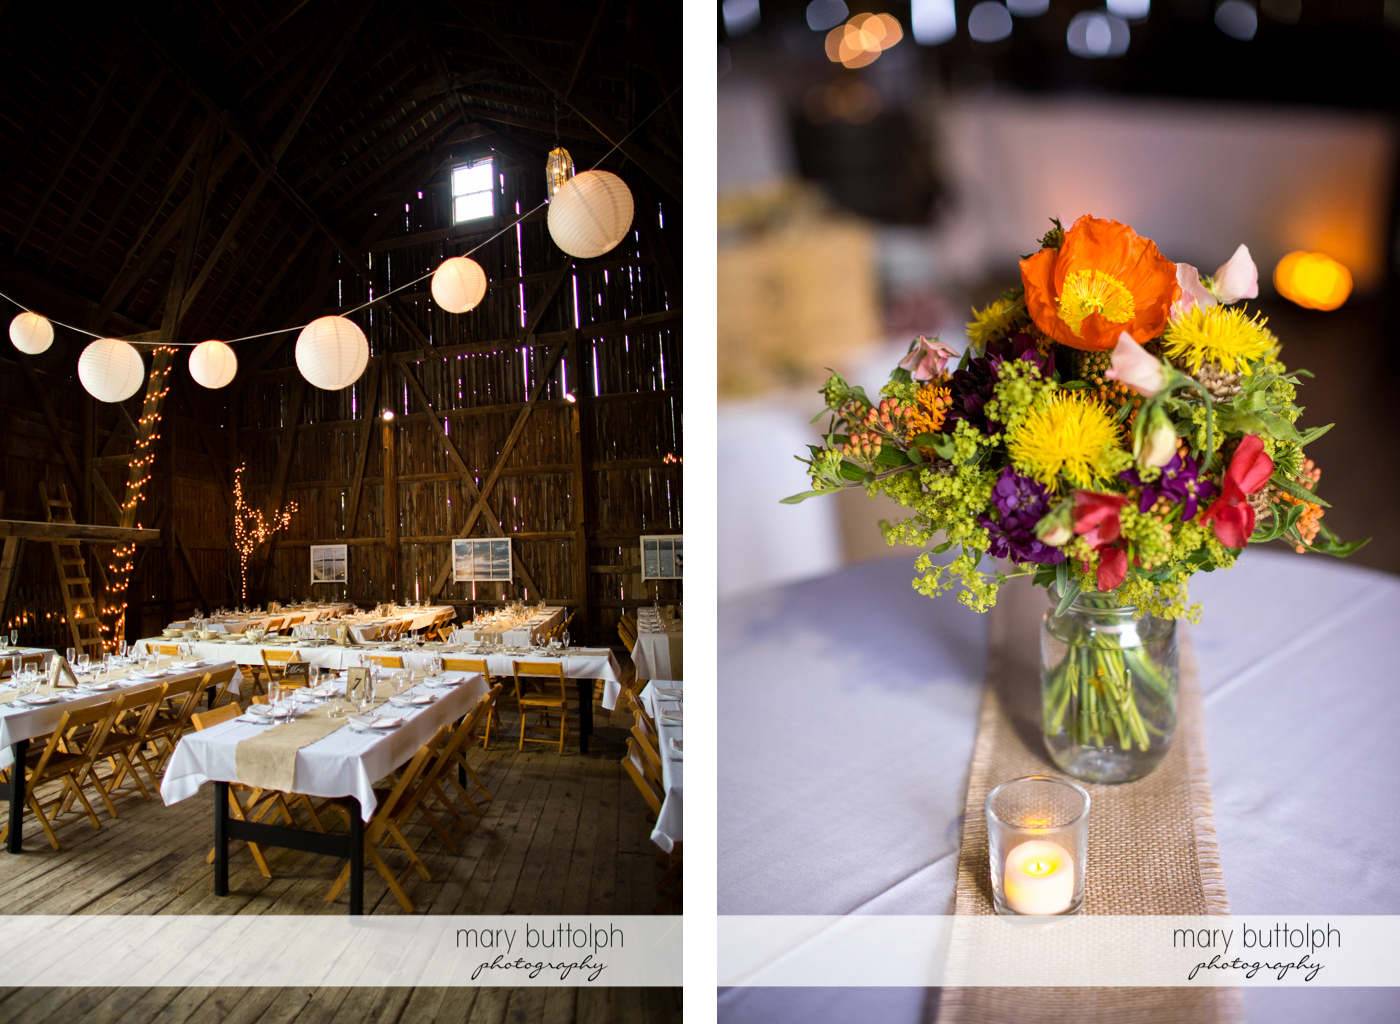 The wedding venue and close up shot of flowers on the table at Mandana Barn Wedding